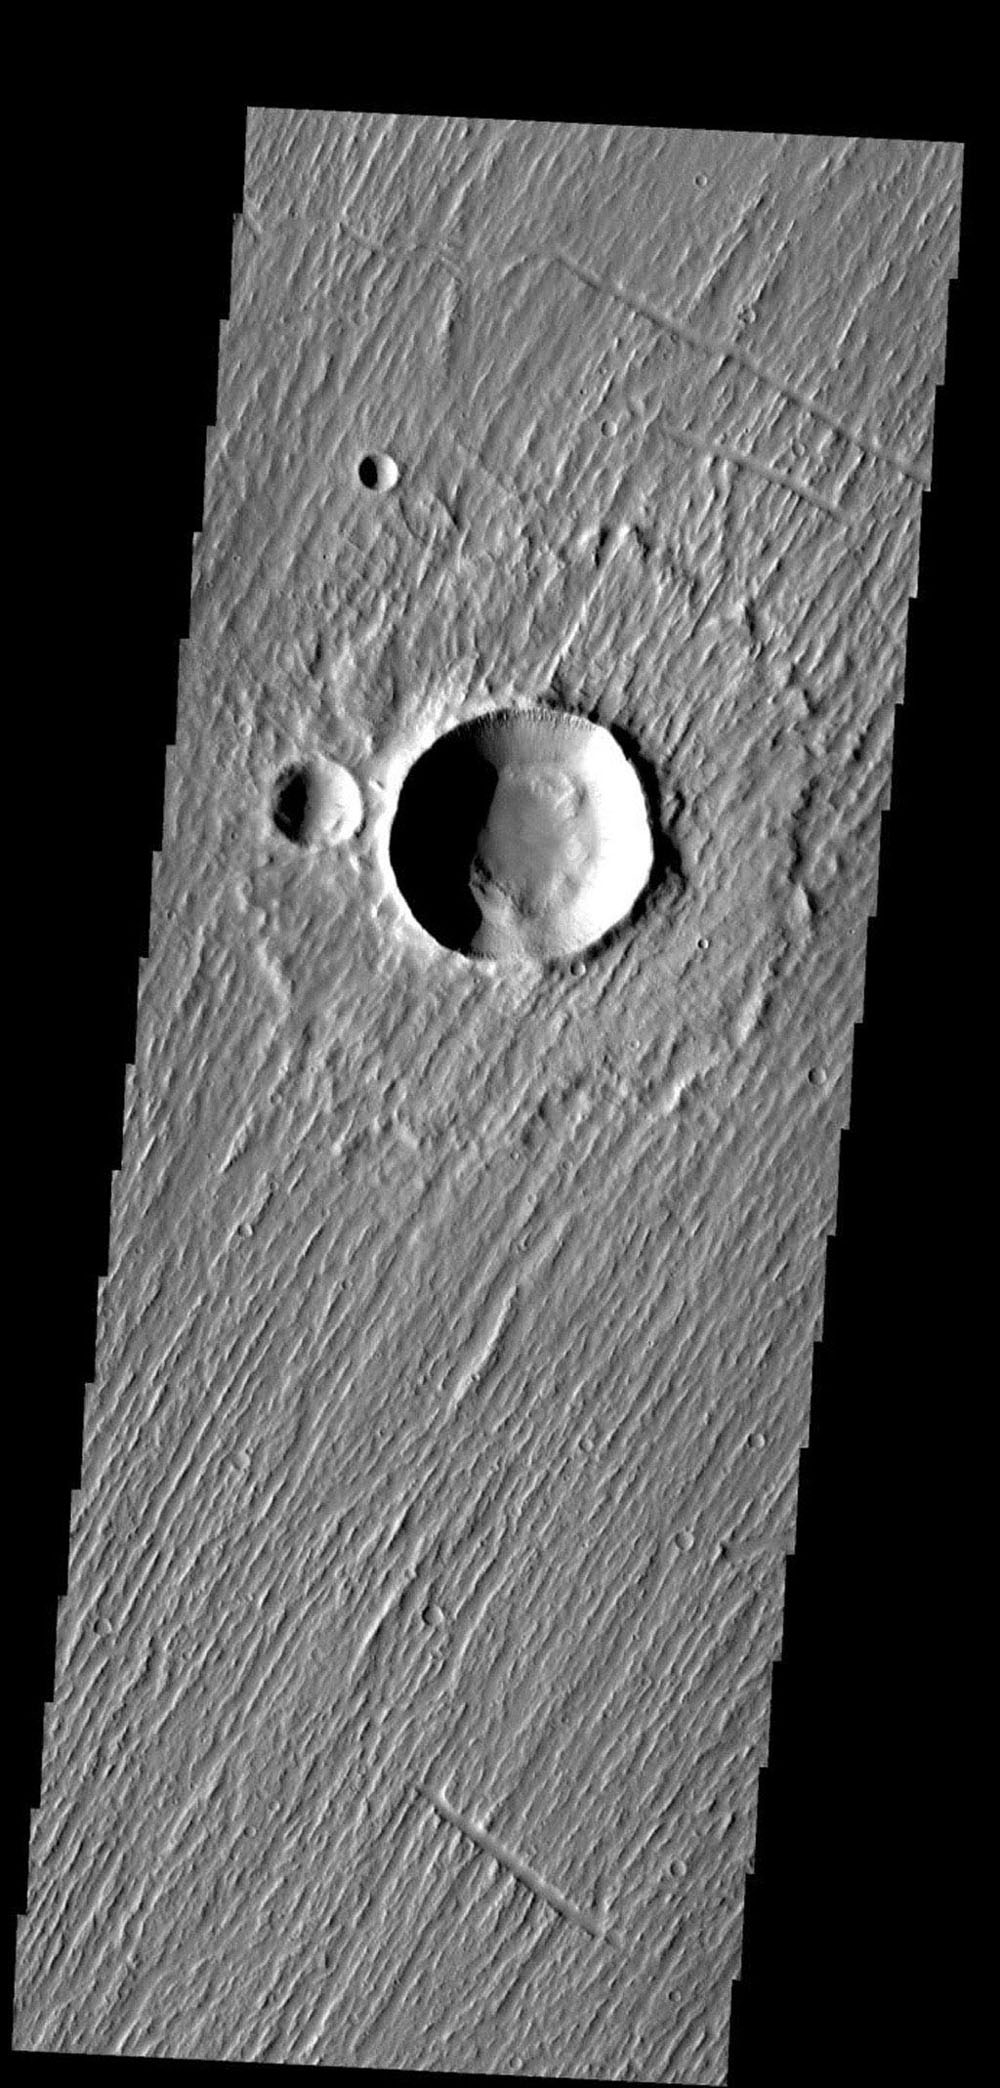 This image is from NASA's 2001 Mars Odyssey. Linear ridges on Mars cover this entire image - except for the interior of the craters.